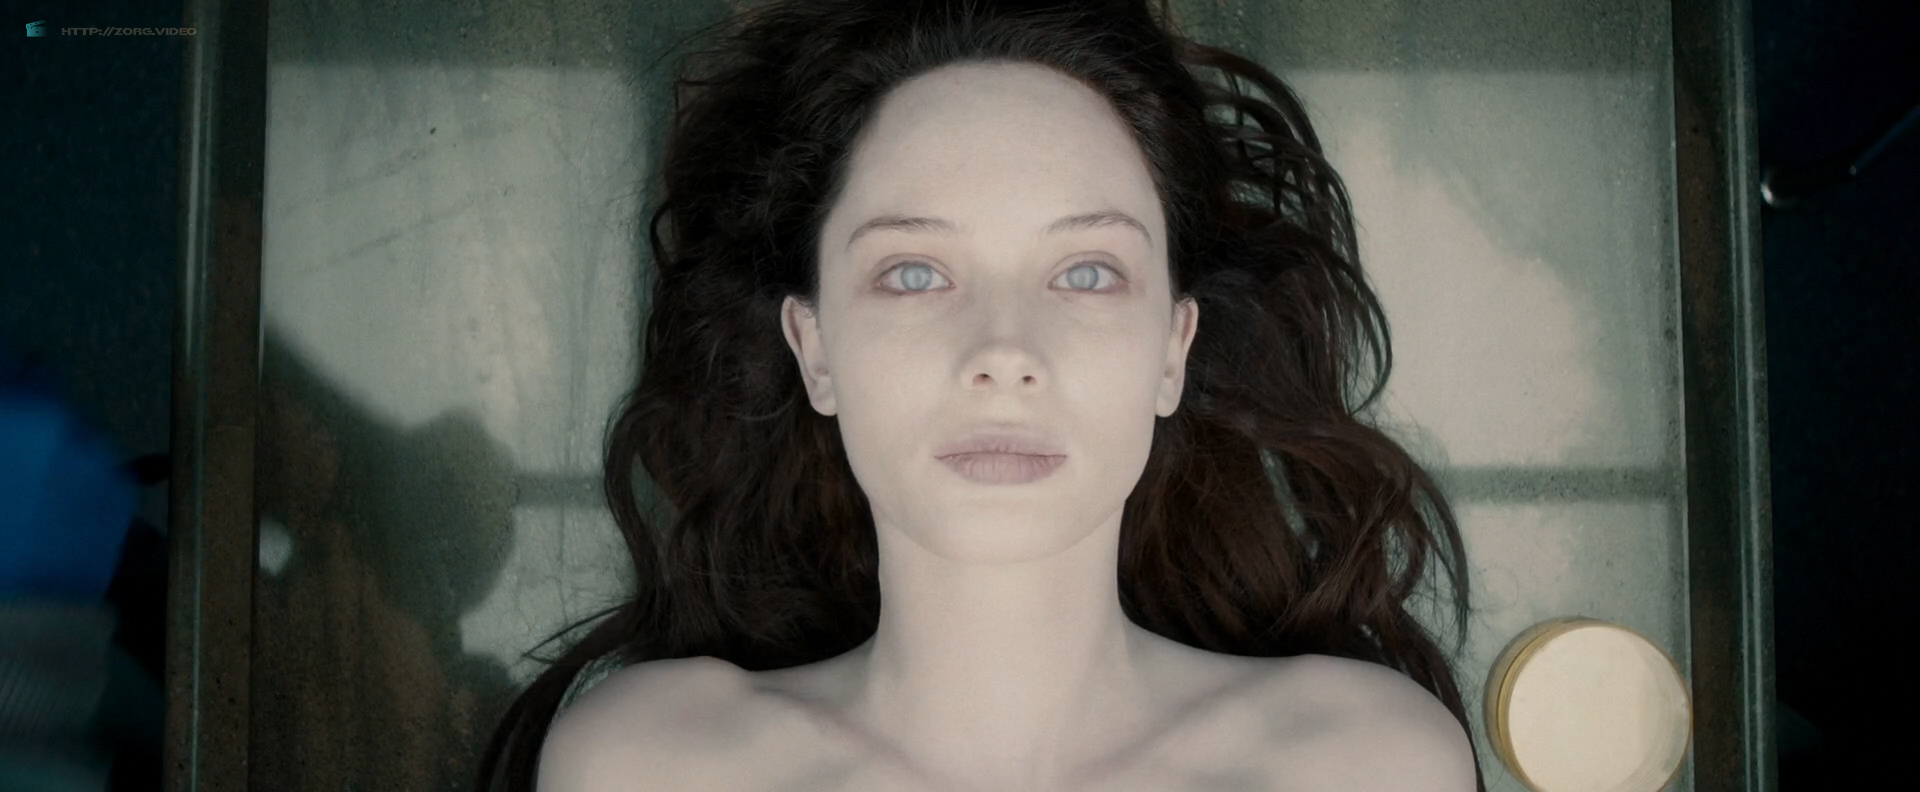 Olwen Catherine Kelly nude bush and boobs - The Autopsy of Jane Doe (2016) HD 1080p WebDl (10)